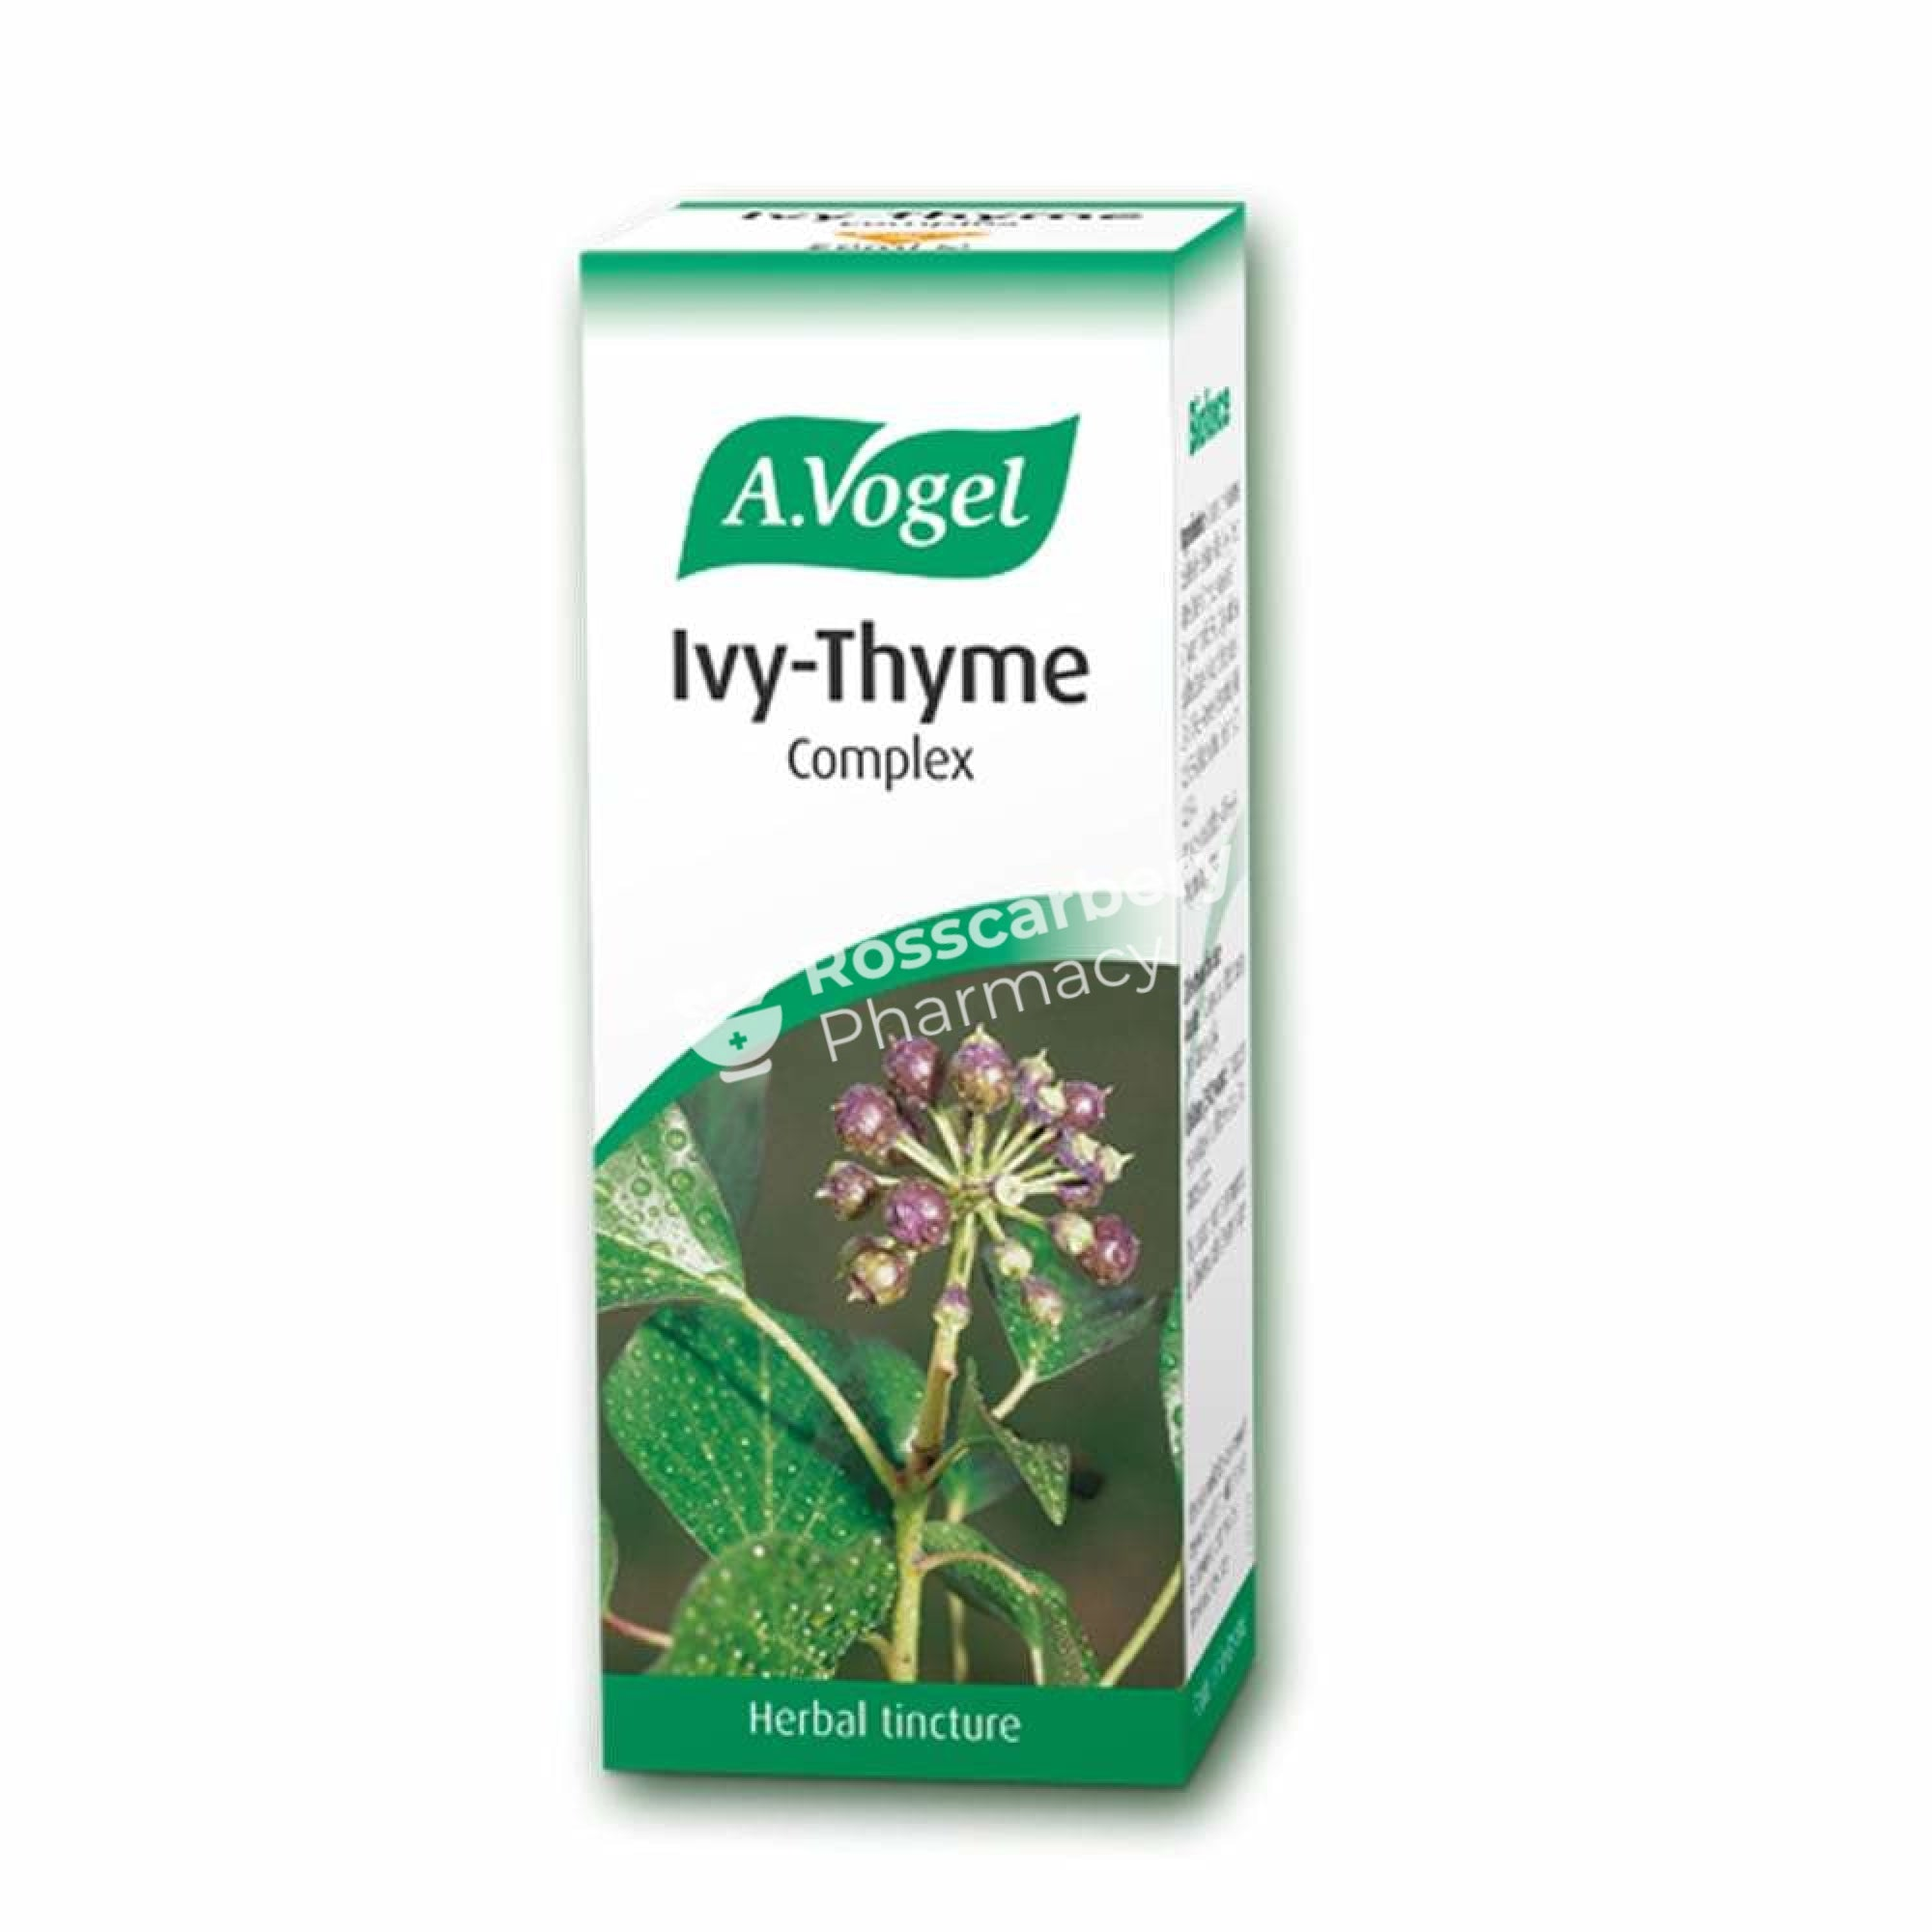 A Vogel Ivy-Thyme Complex Drops Herbal & Traditional Remedies